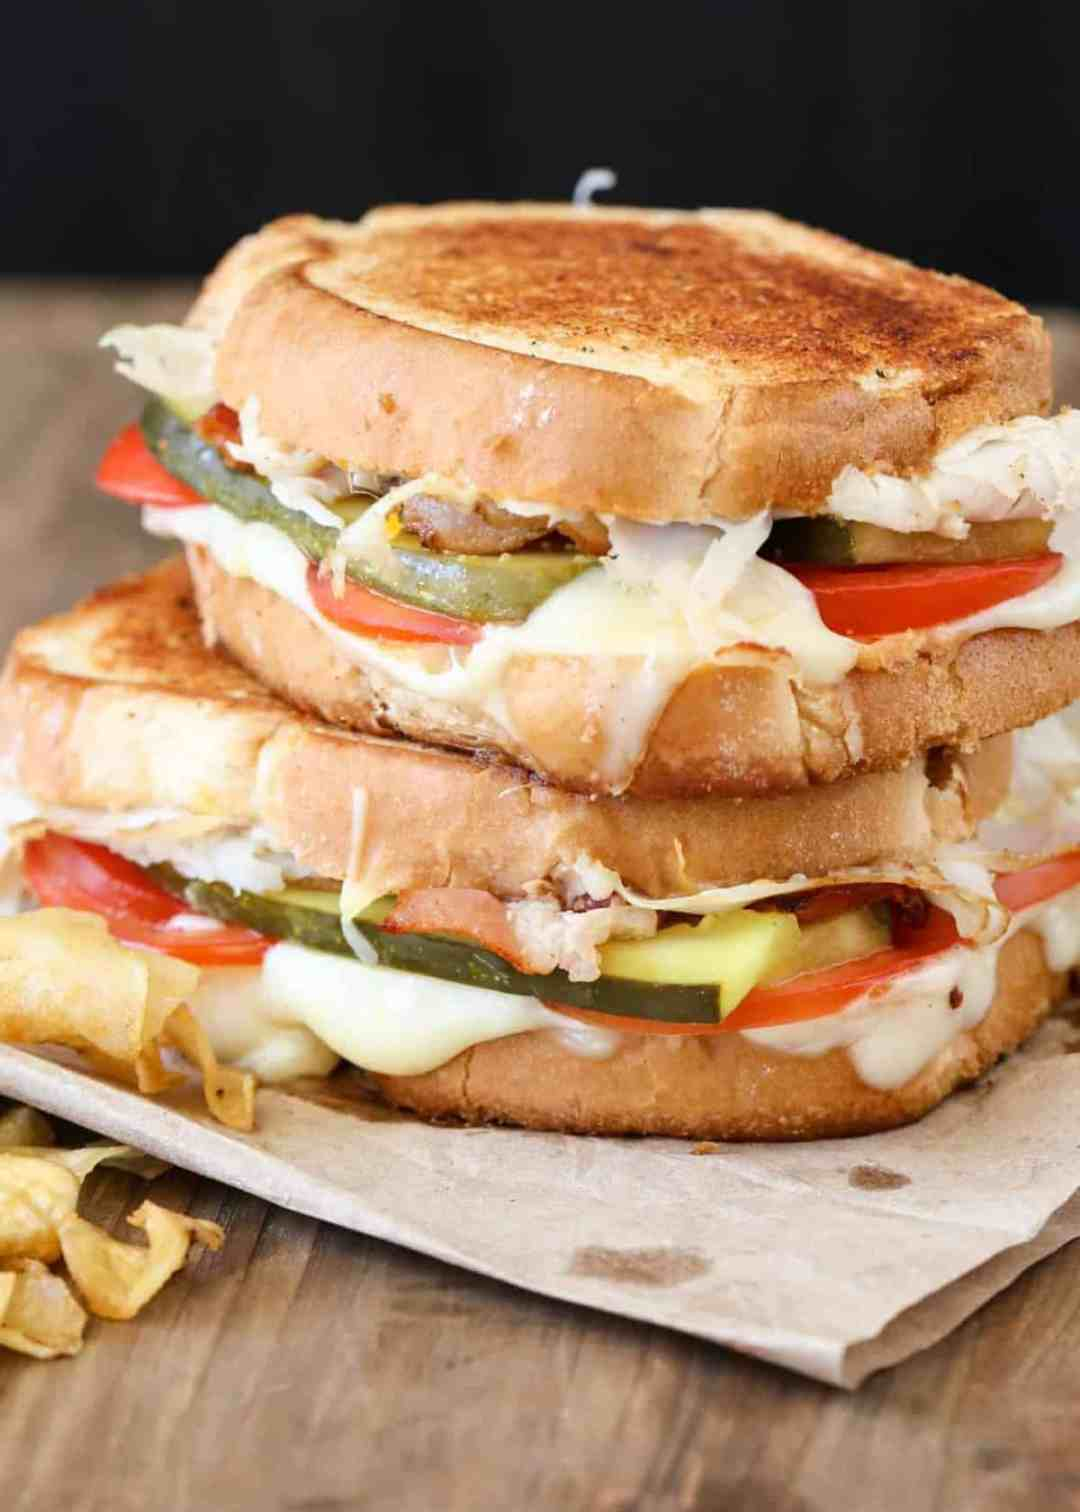 Turkey bacon grilled cheese recipe with two sandwiches stacked ontop with chips.